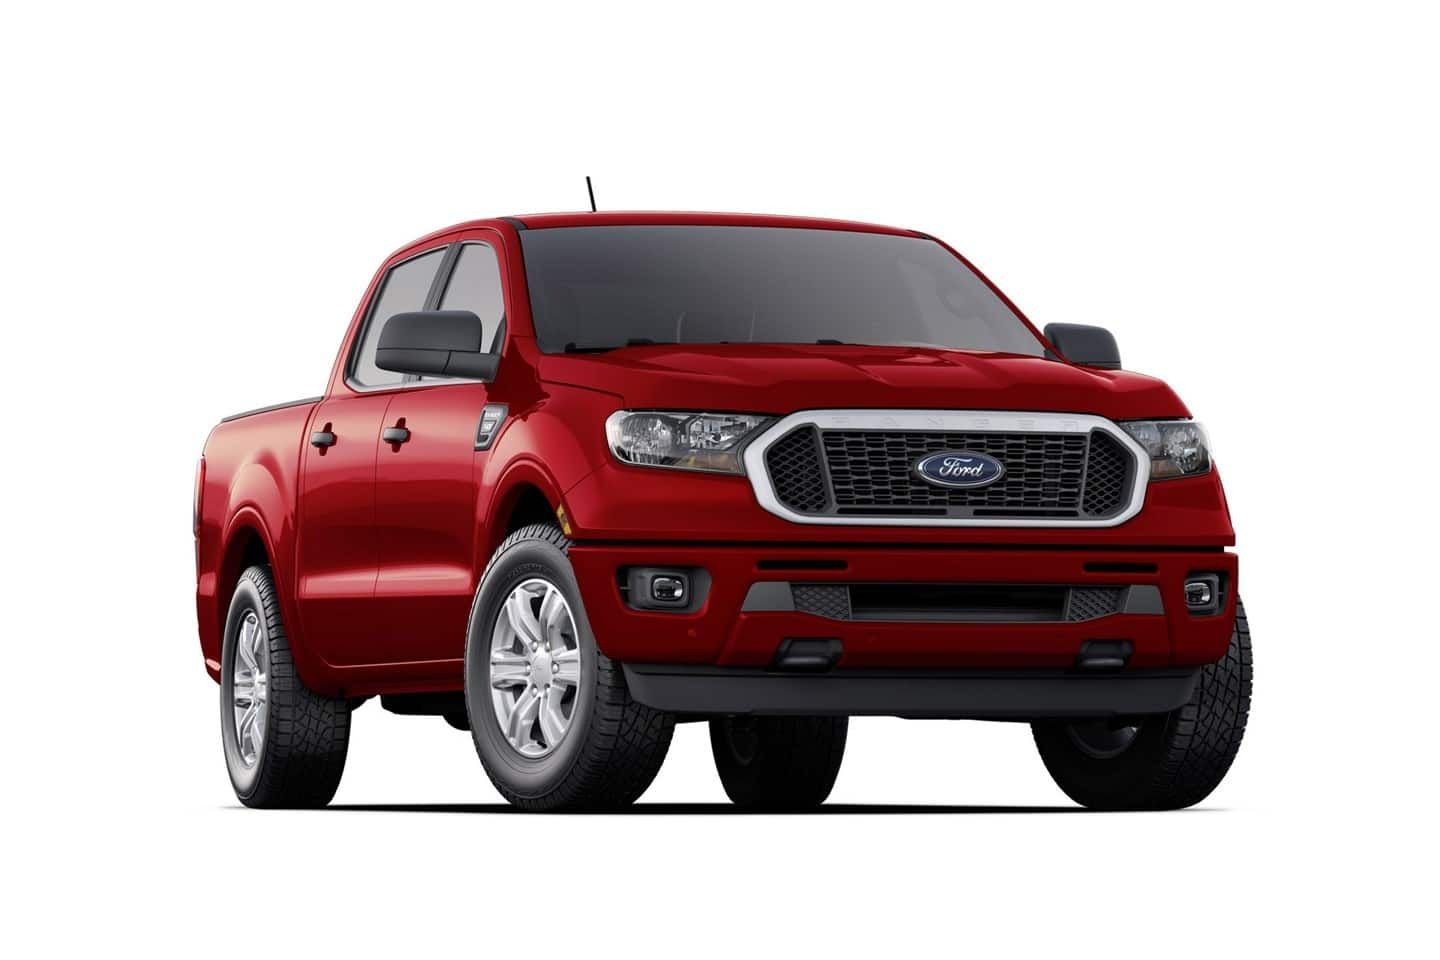 2020 Ford Ranger X L T In Rapid Red In 2020 2020 Ford Ranger Ford Ranger Ford Ranger Price